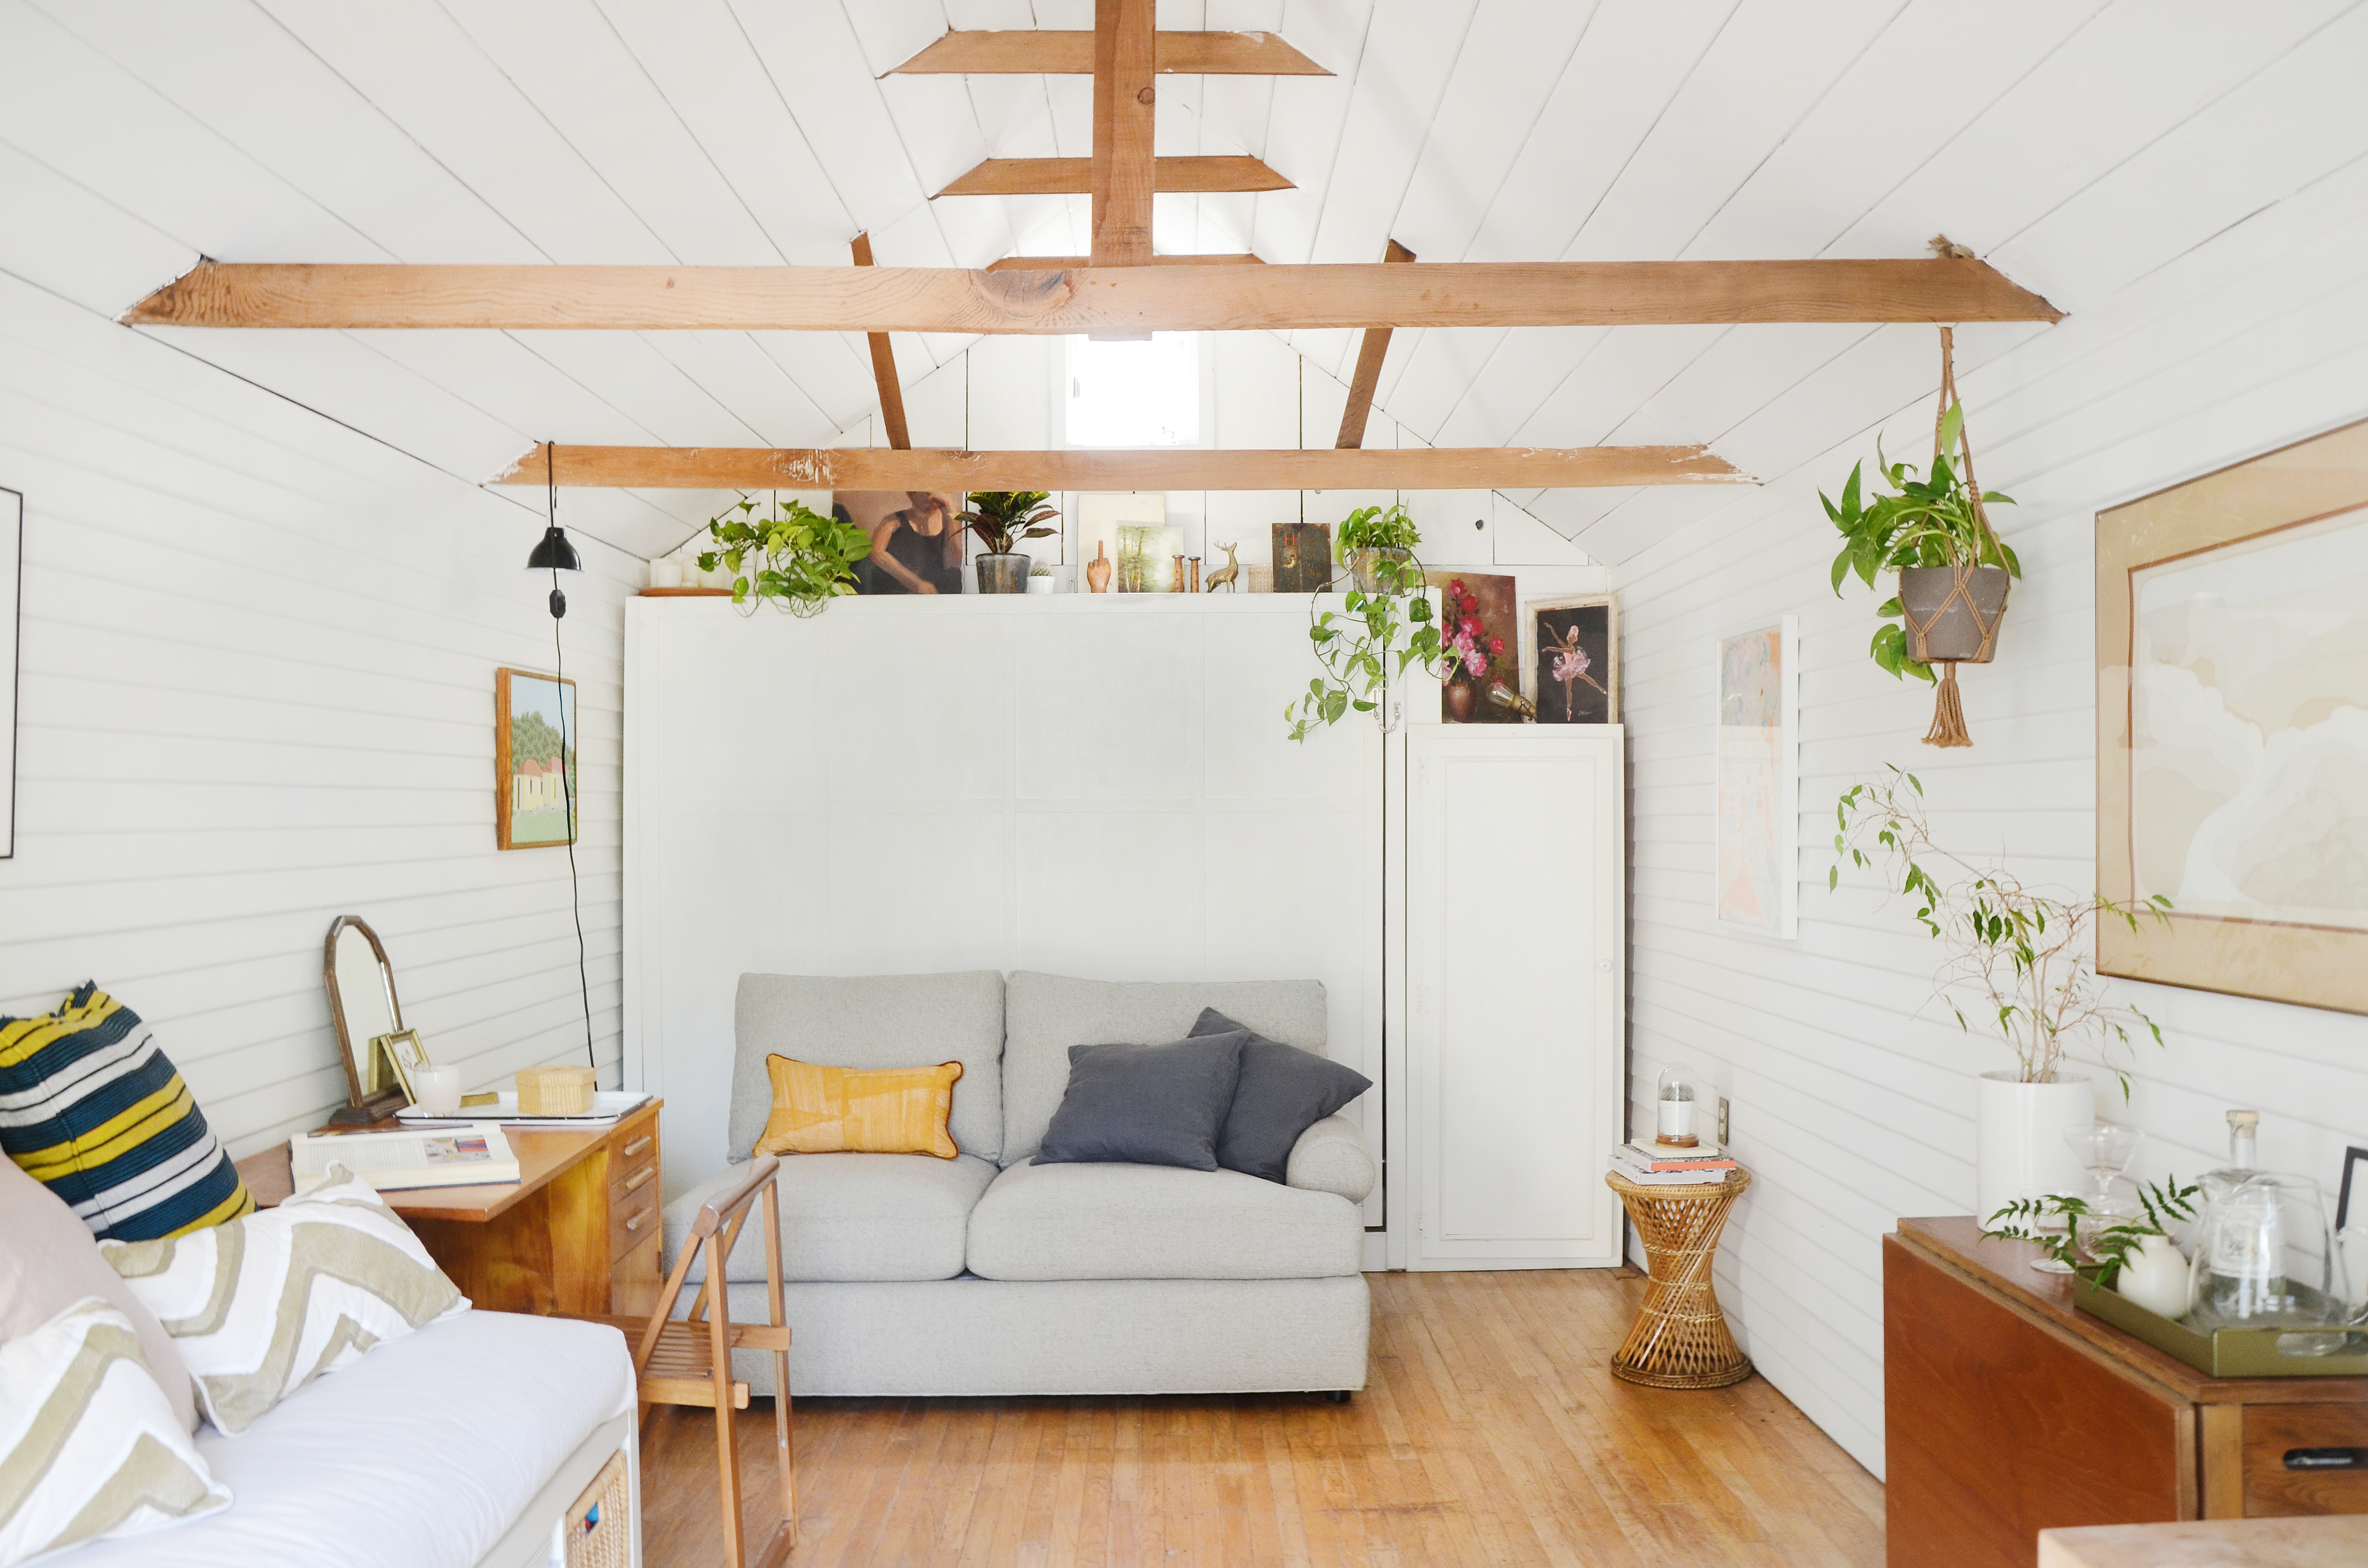 The Best Small E Organization Solutions According To People Who Live In Tiny Homes